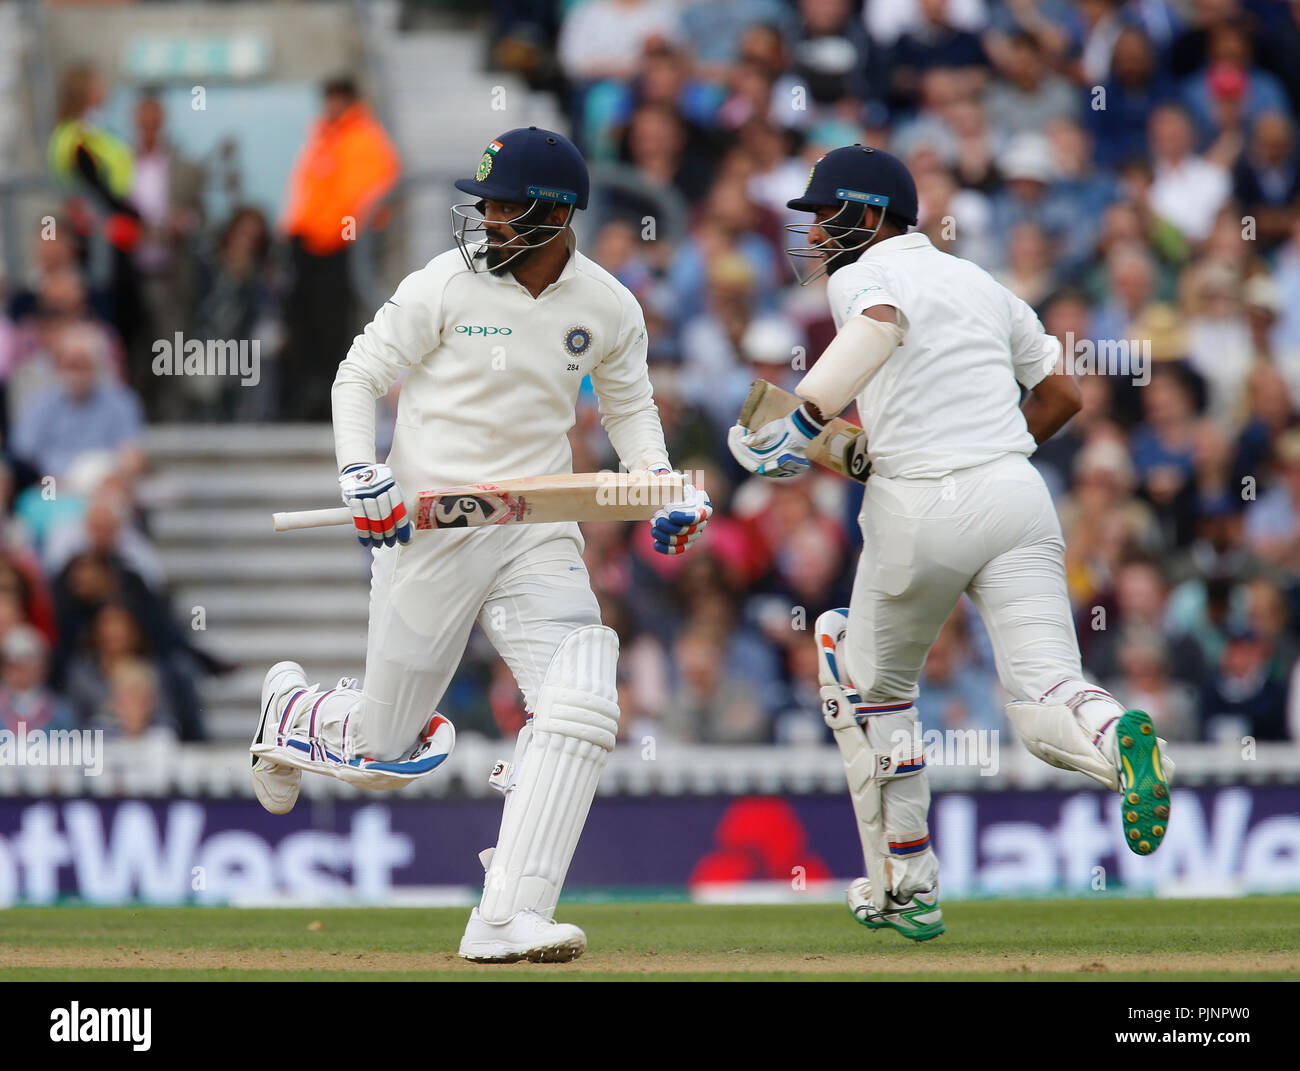 Kia Oval, London, UK. 8th Sep, 2018. Specsavers International Test Match Cricket, 5th test, day 2; KL Rahul and Cheteshwar Pujara of India run between the wickets Credit: Action Plus Sports/Alamy Live News Stock Photo